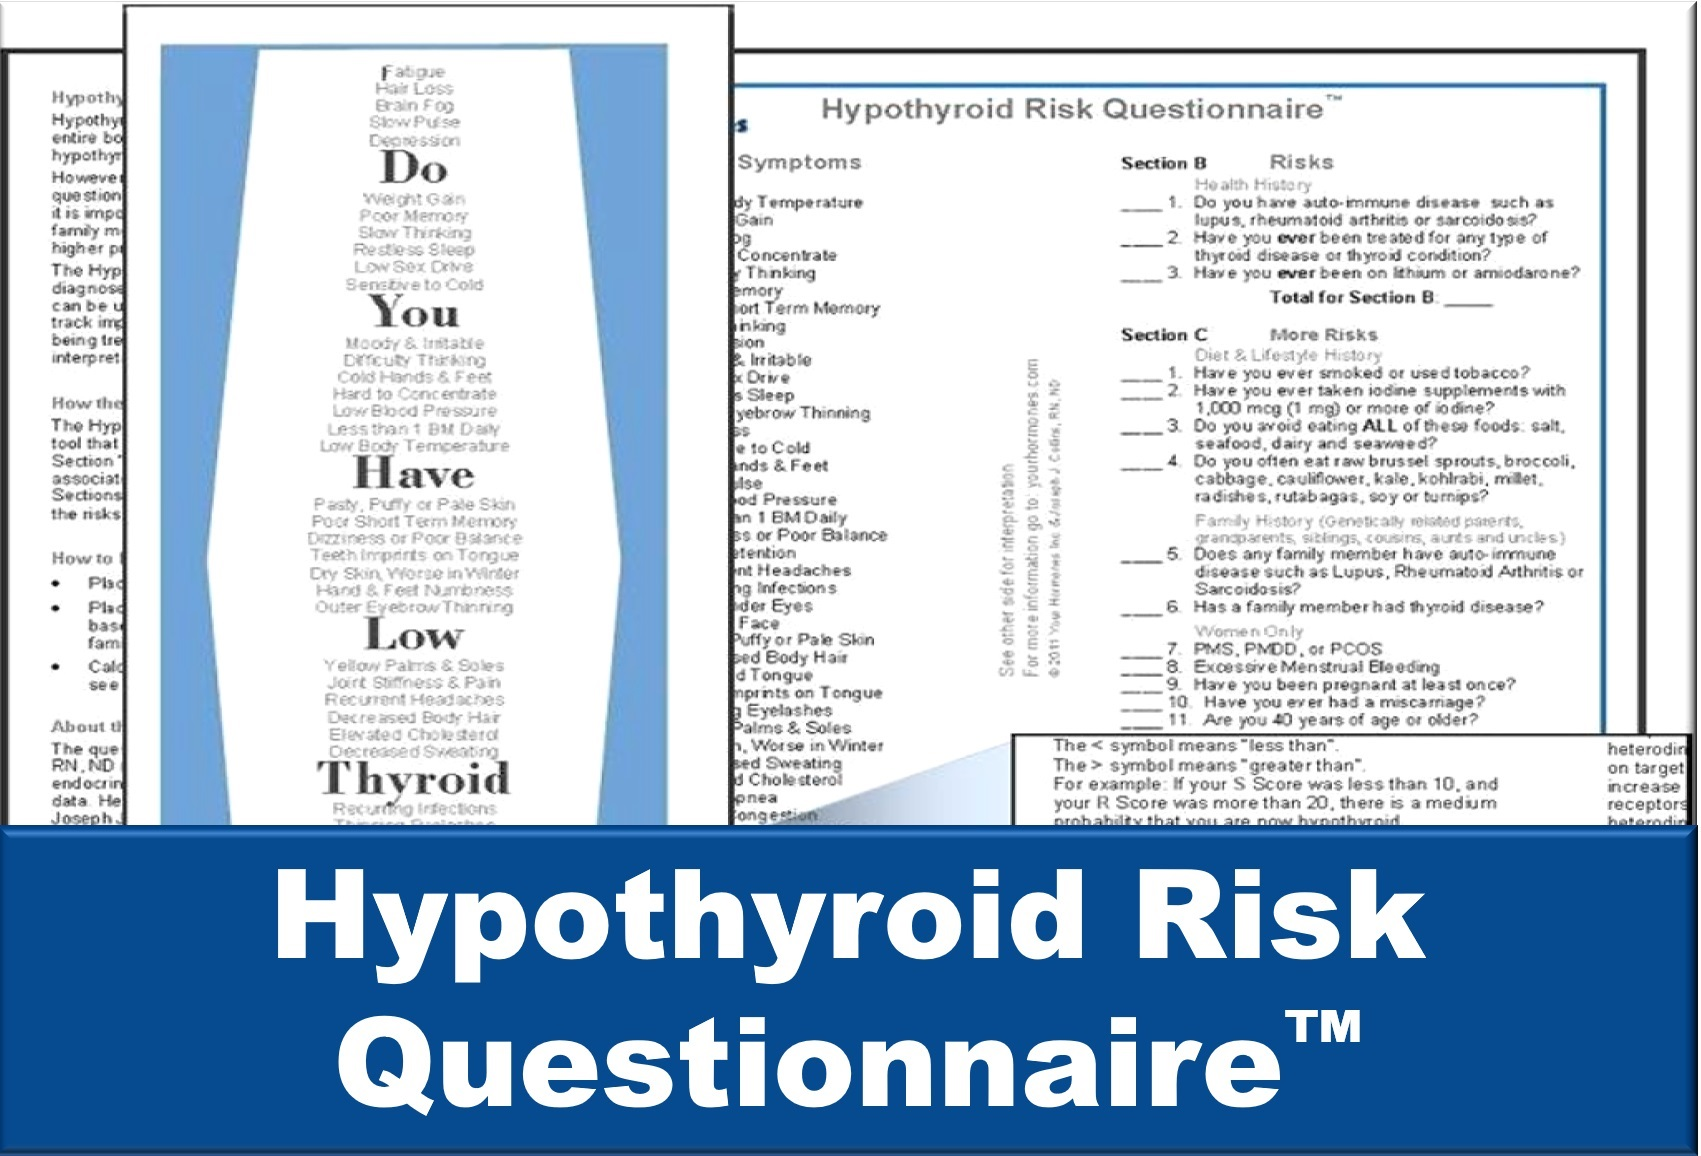 Hypothyroid Risk Questionnaire™